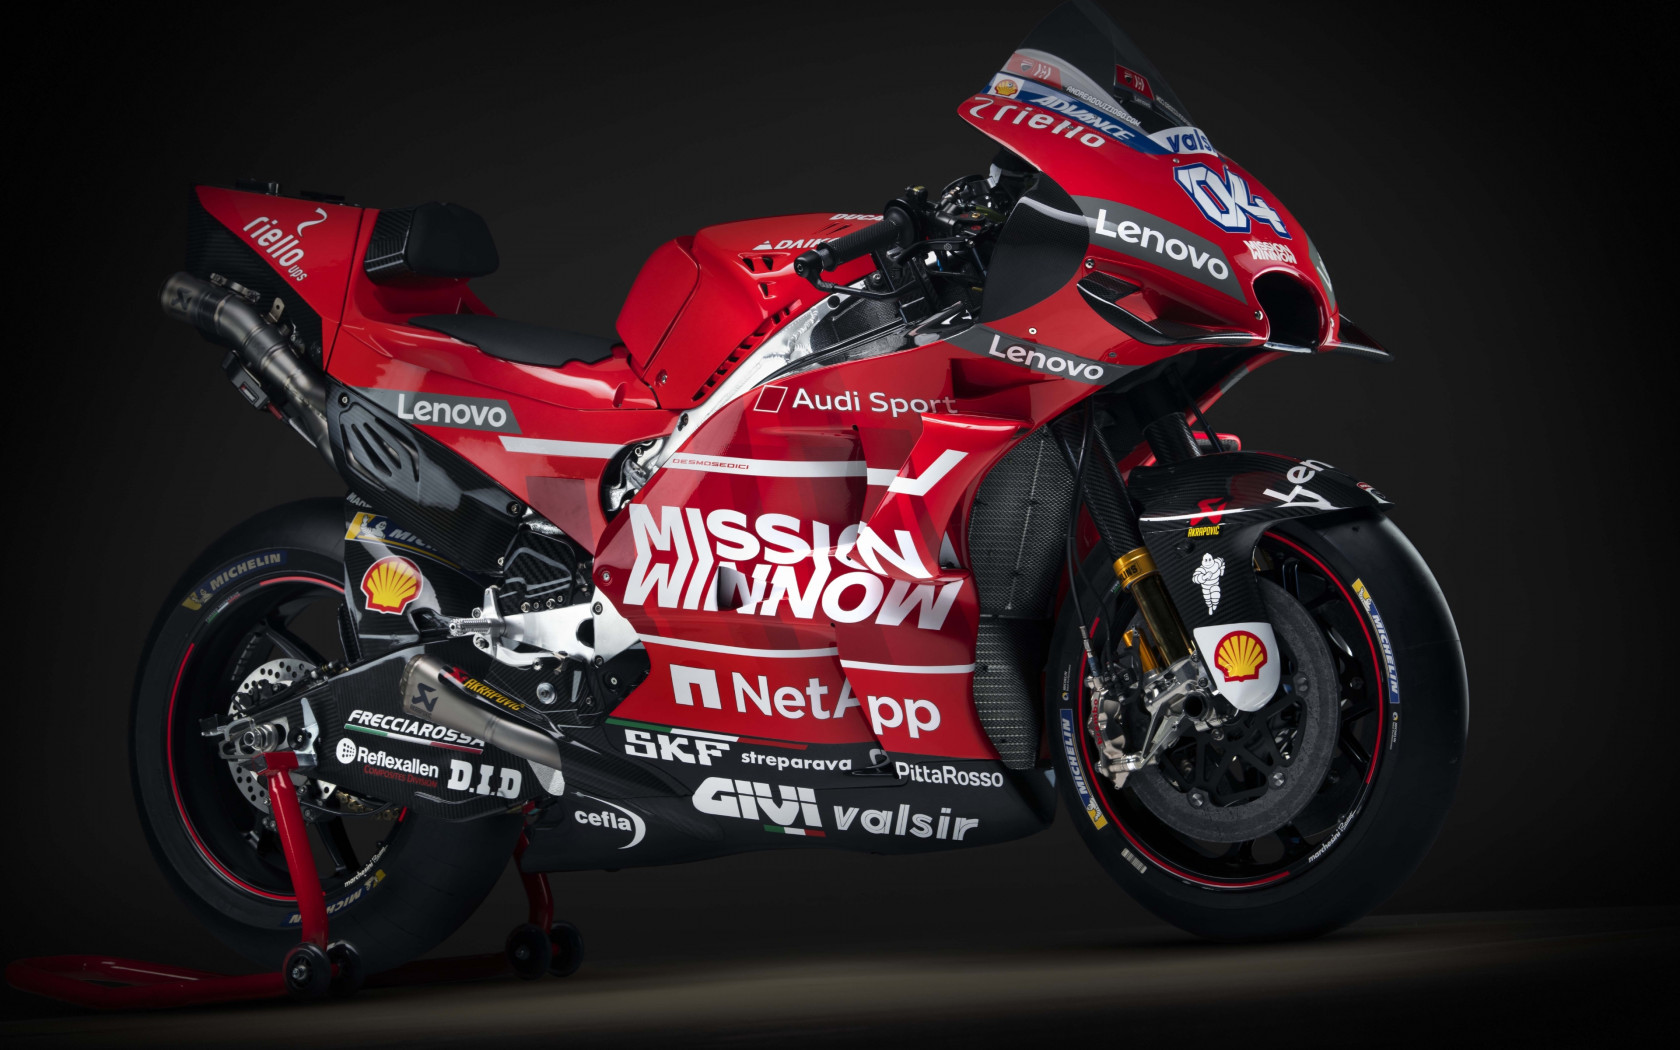 Ducati Desmosedici GP19 wallpaper 1680x1050